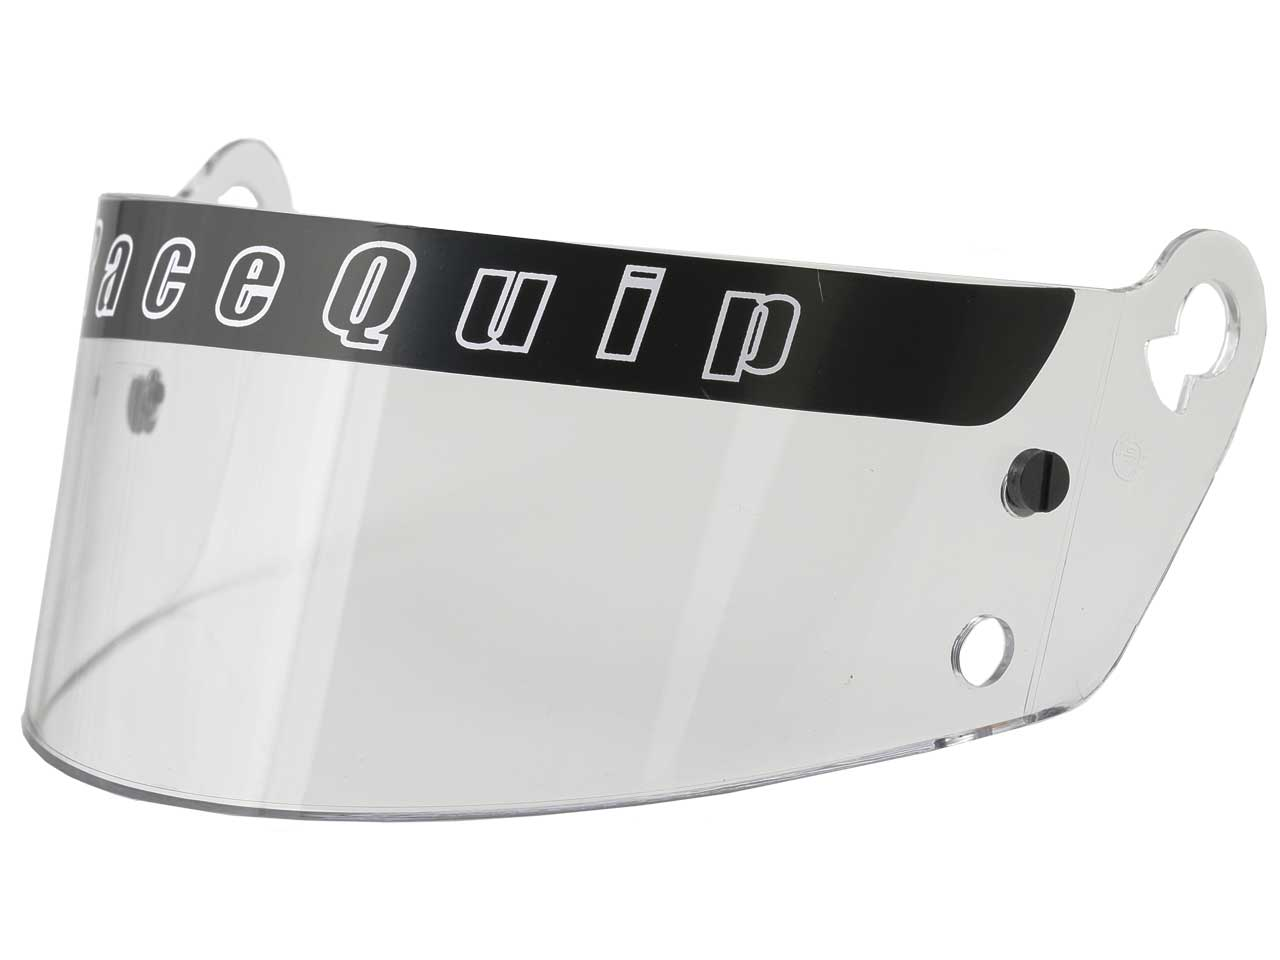 RaceQuip Pro Series Shield - Clear